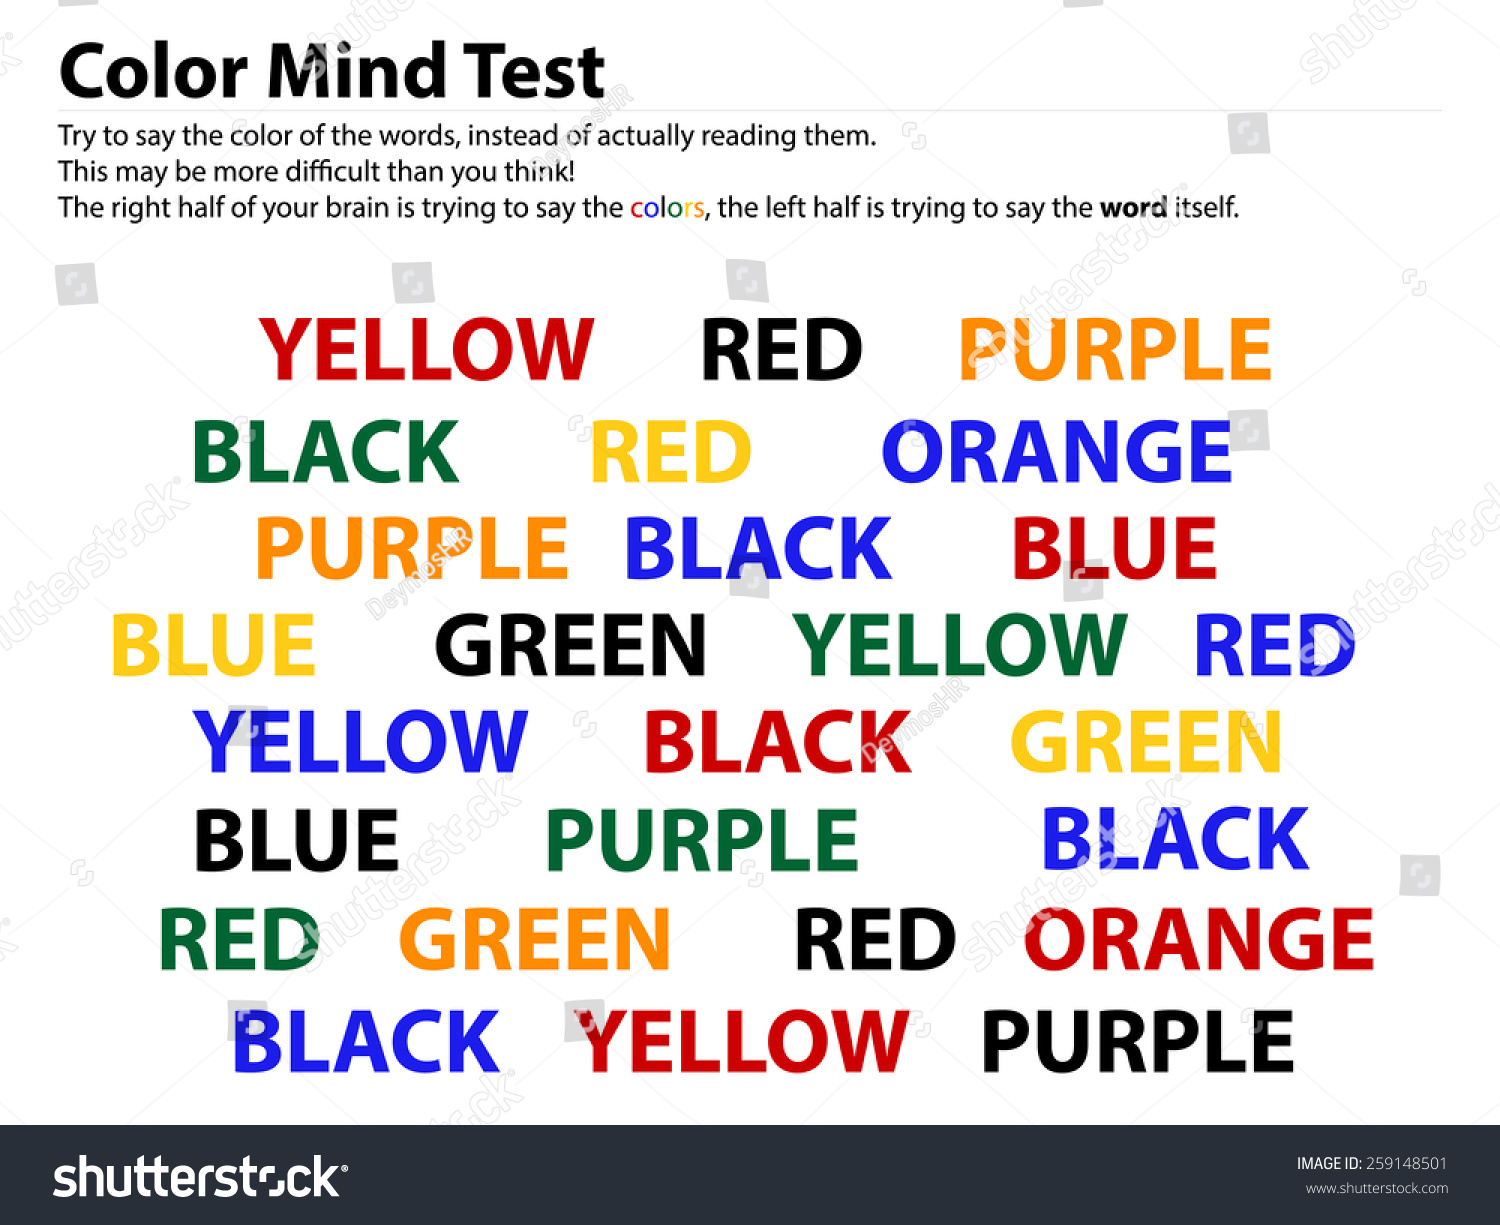 Color Mind Test Reading Words Is Easier Than Telling Their Color In This Test 2 Different